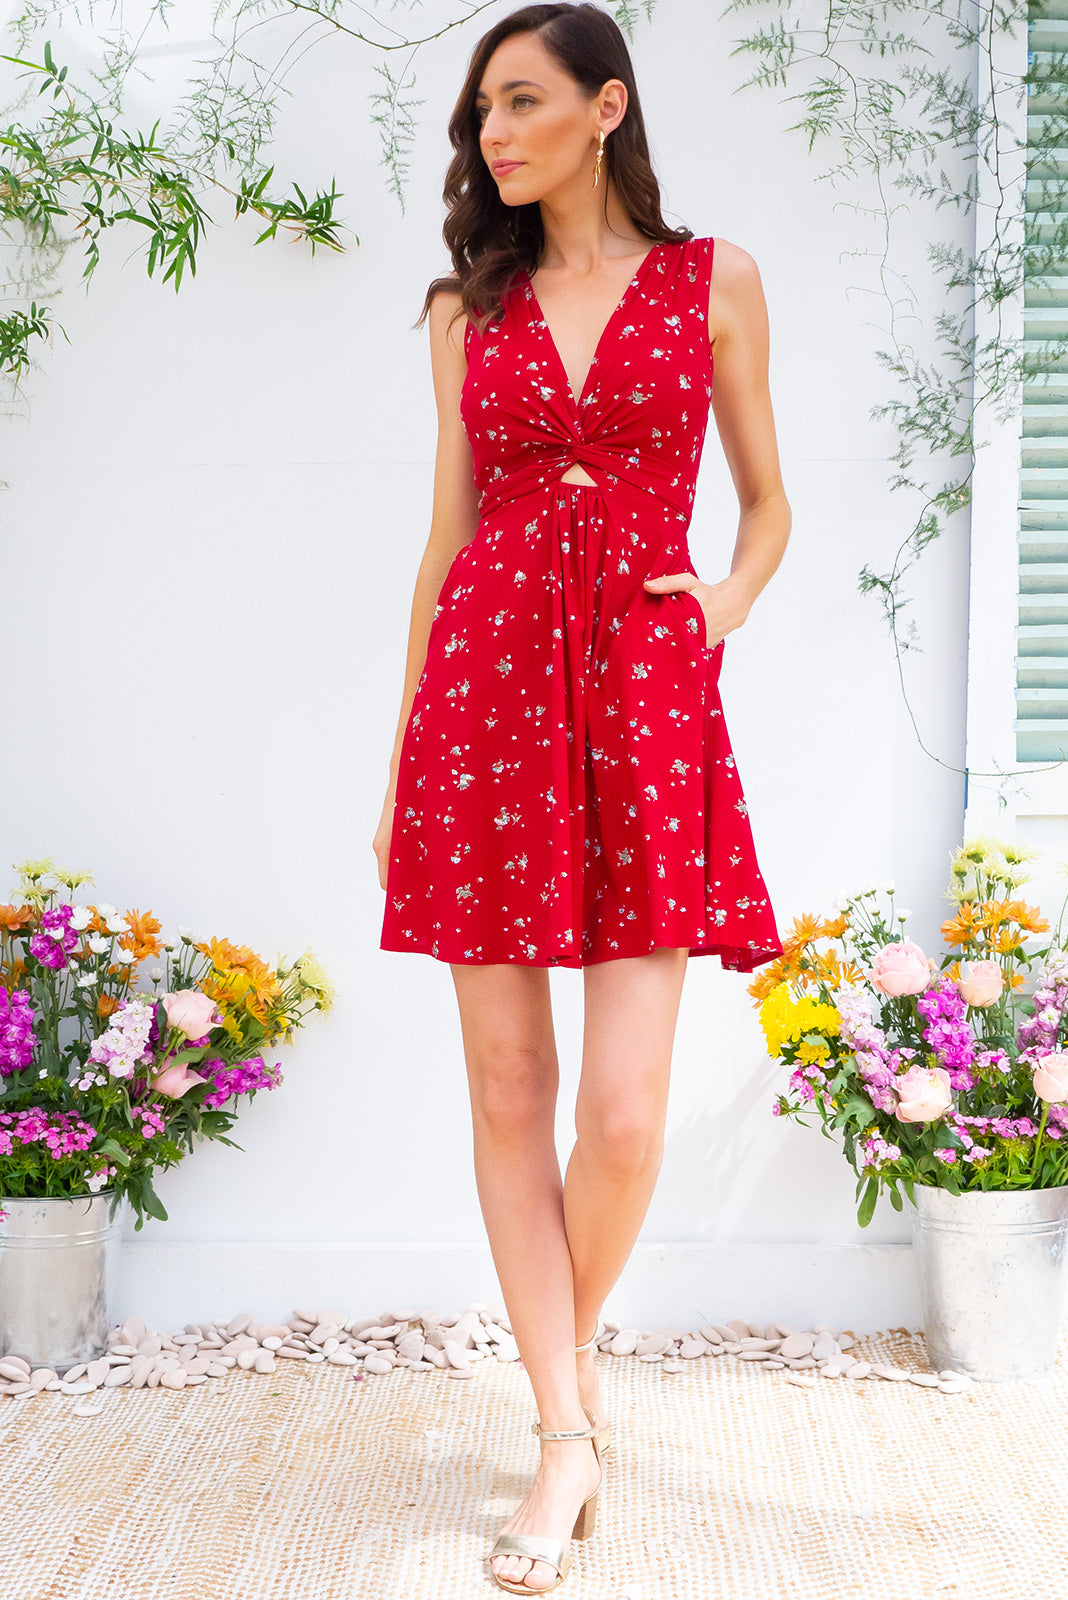 Little Darling Red Snow Wrap Dress tie front wrap dress with an elastic waist and a plunging v neckline made from a 100% rayon fabric in a bright red ditzy floral print